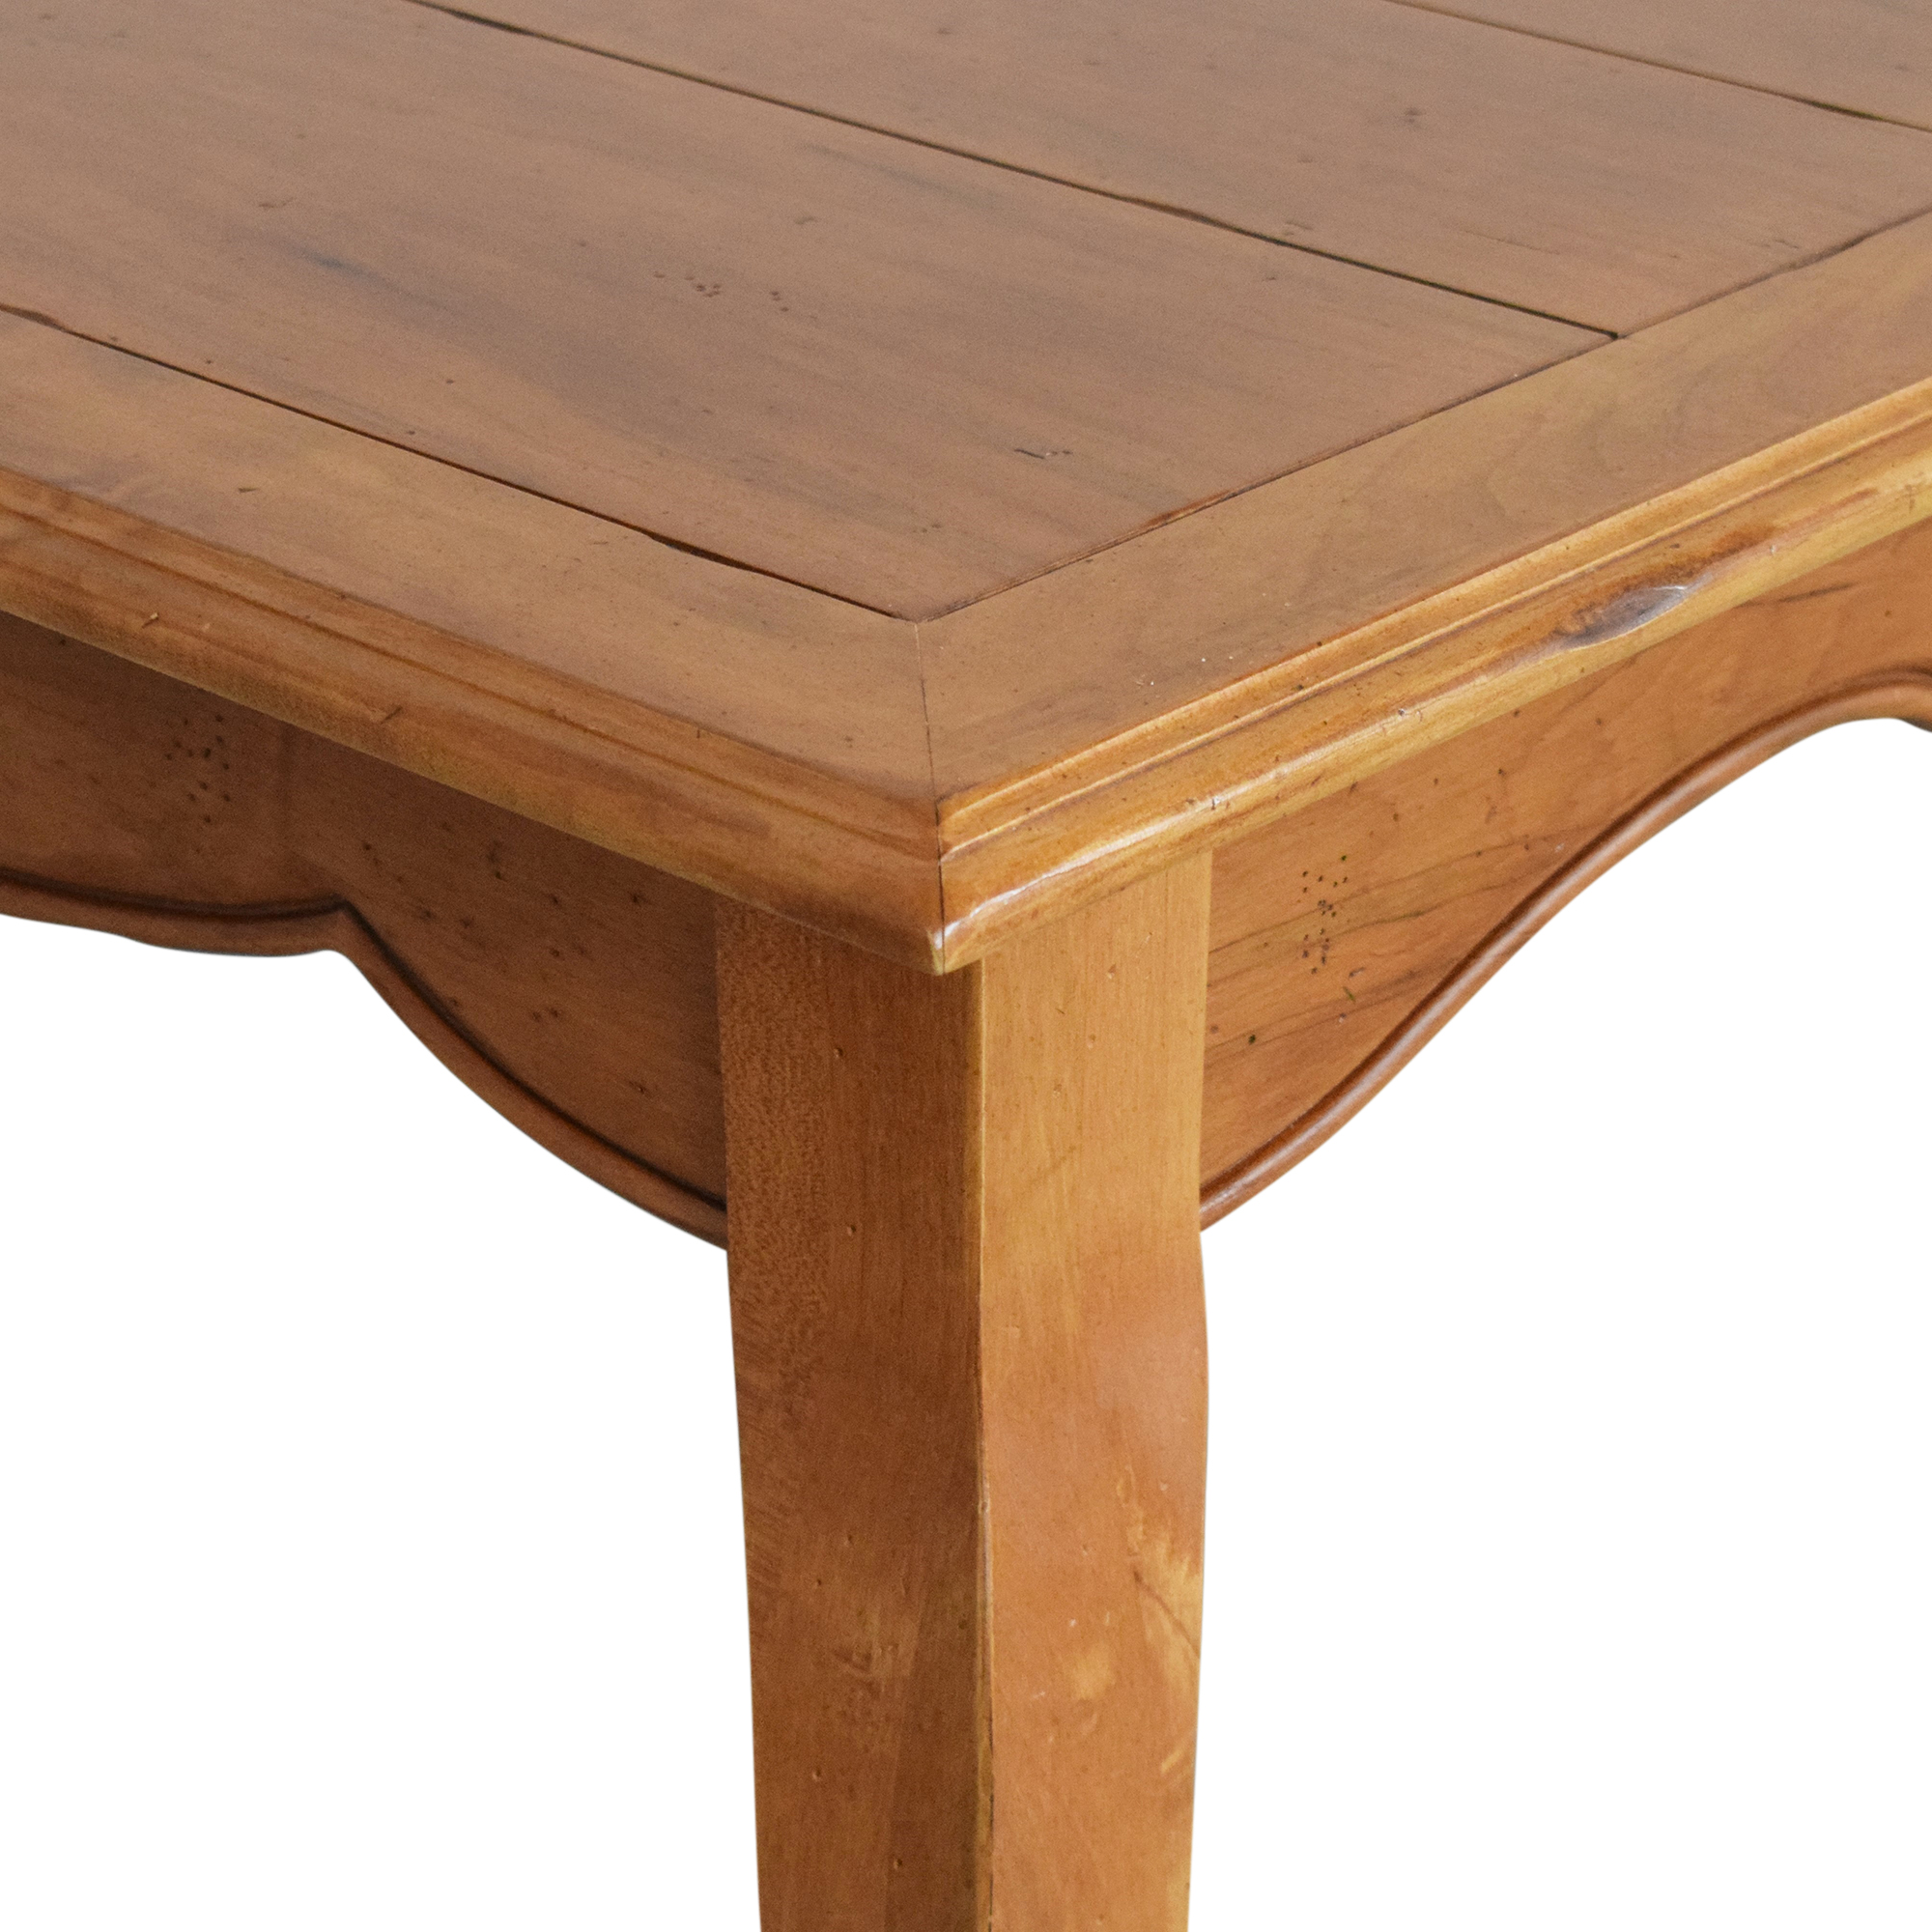 Ethan Allen Ethan Allen Legacy Collection Extendable Dining Table ct